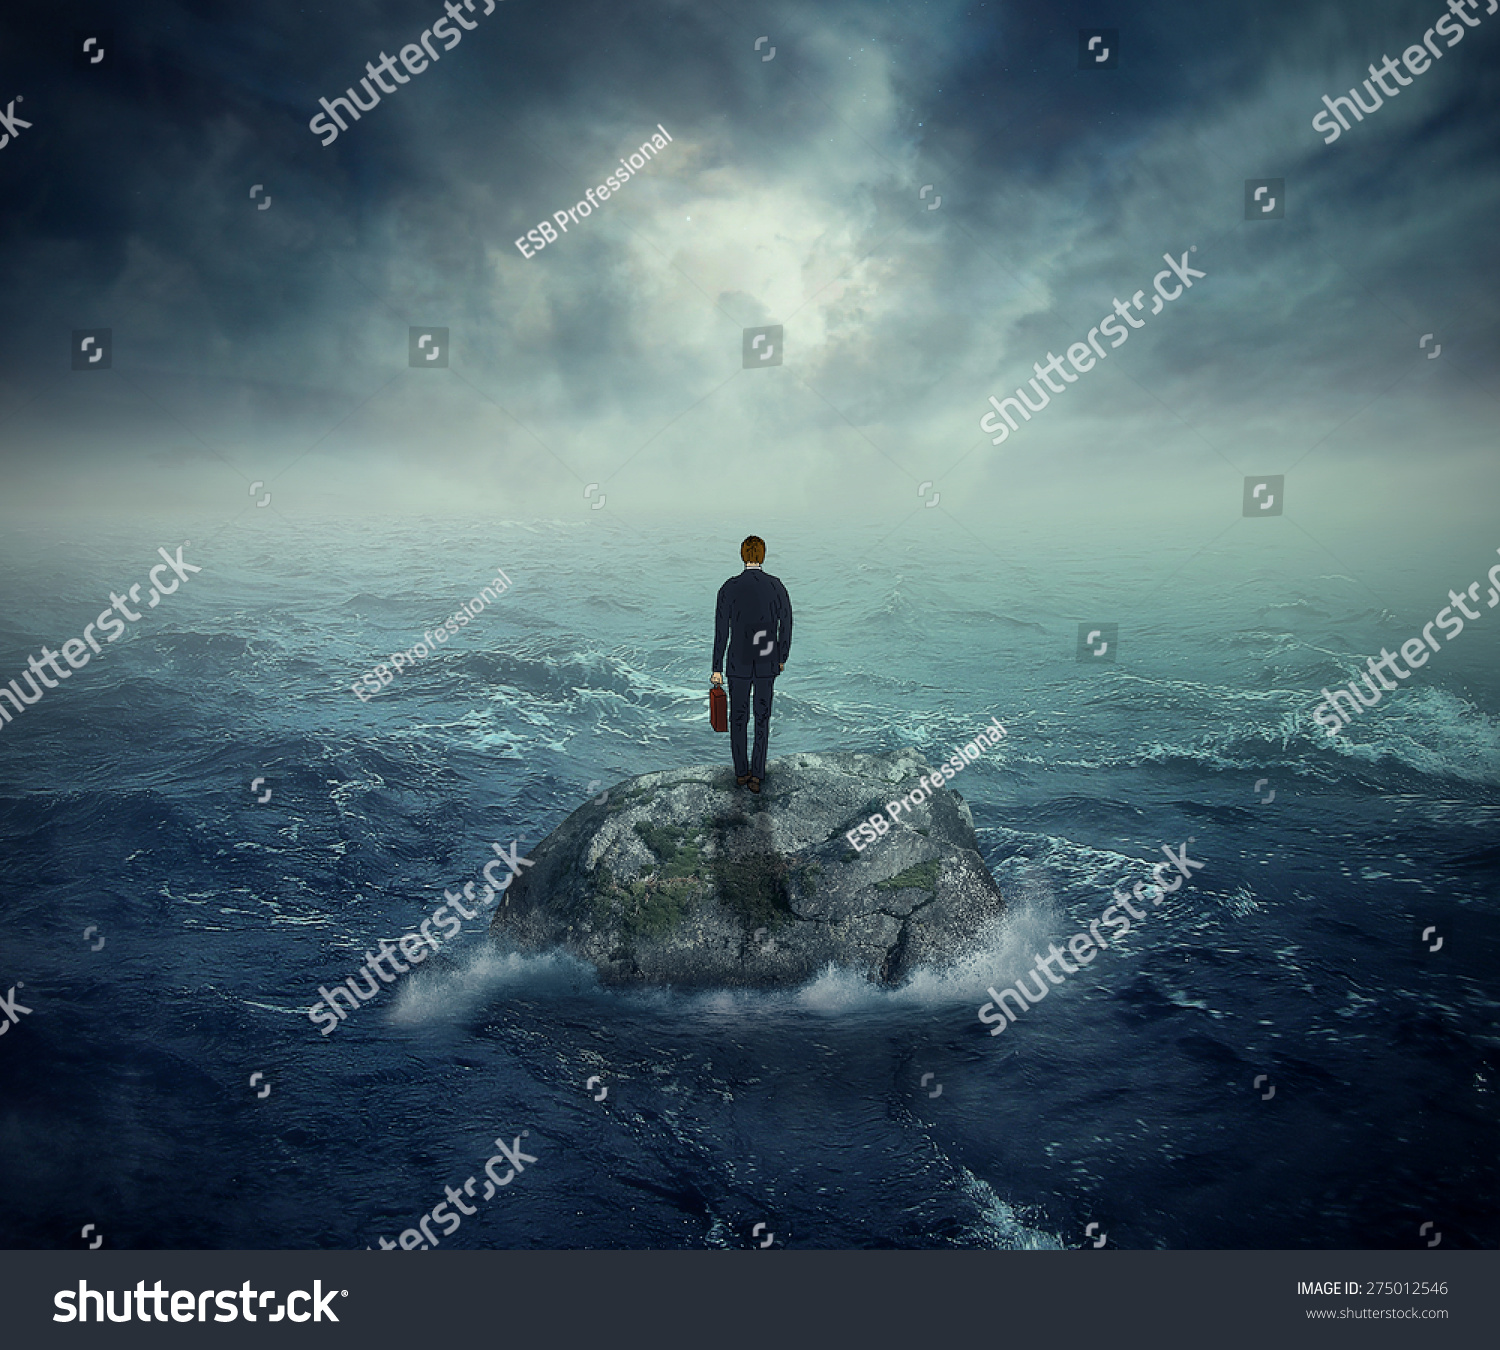 Lonely Girl Walking In Rain Wallpaper Failure Crisis Concept Lost Business Career Stock Photo